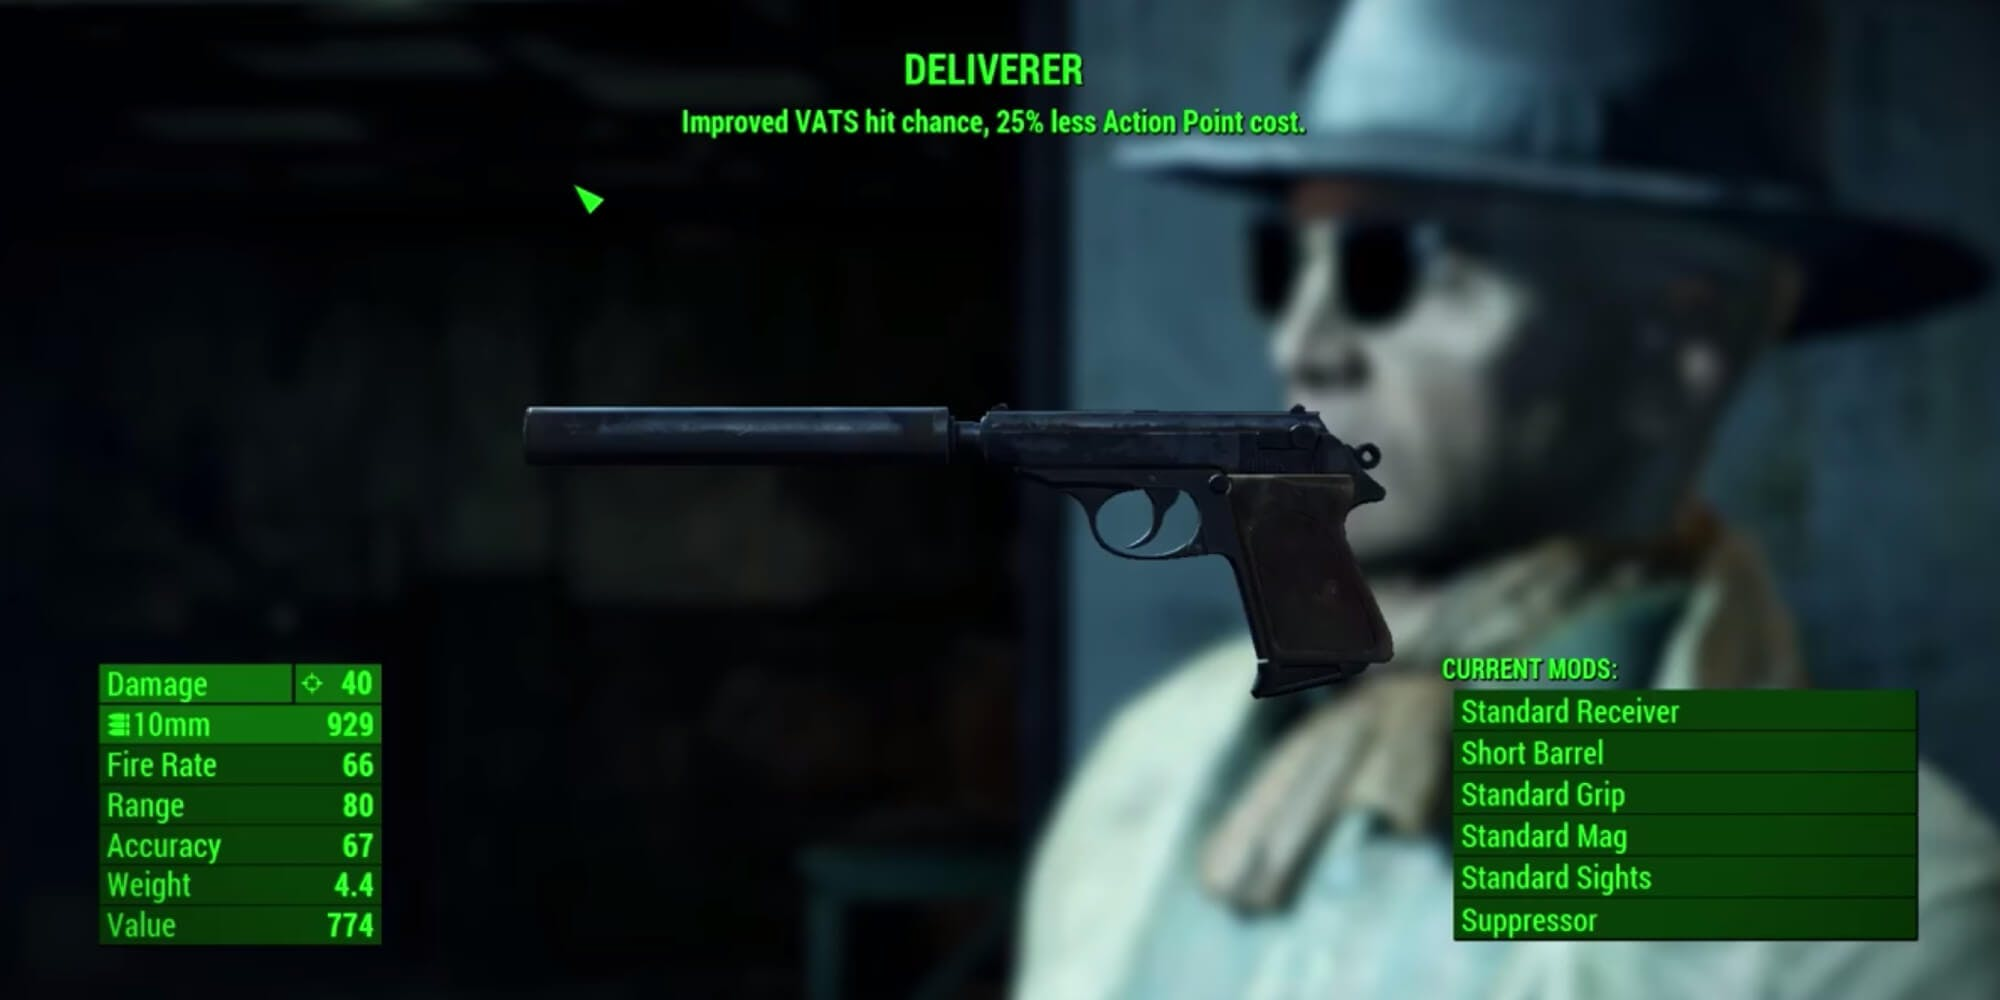 Fallout 4 weapons - deliverer